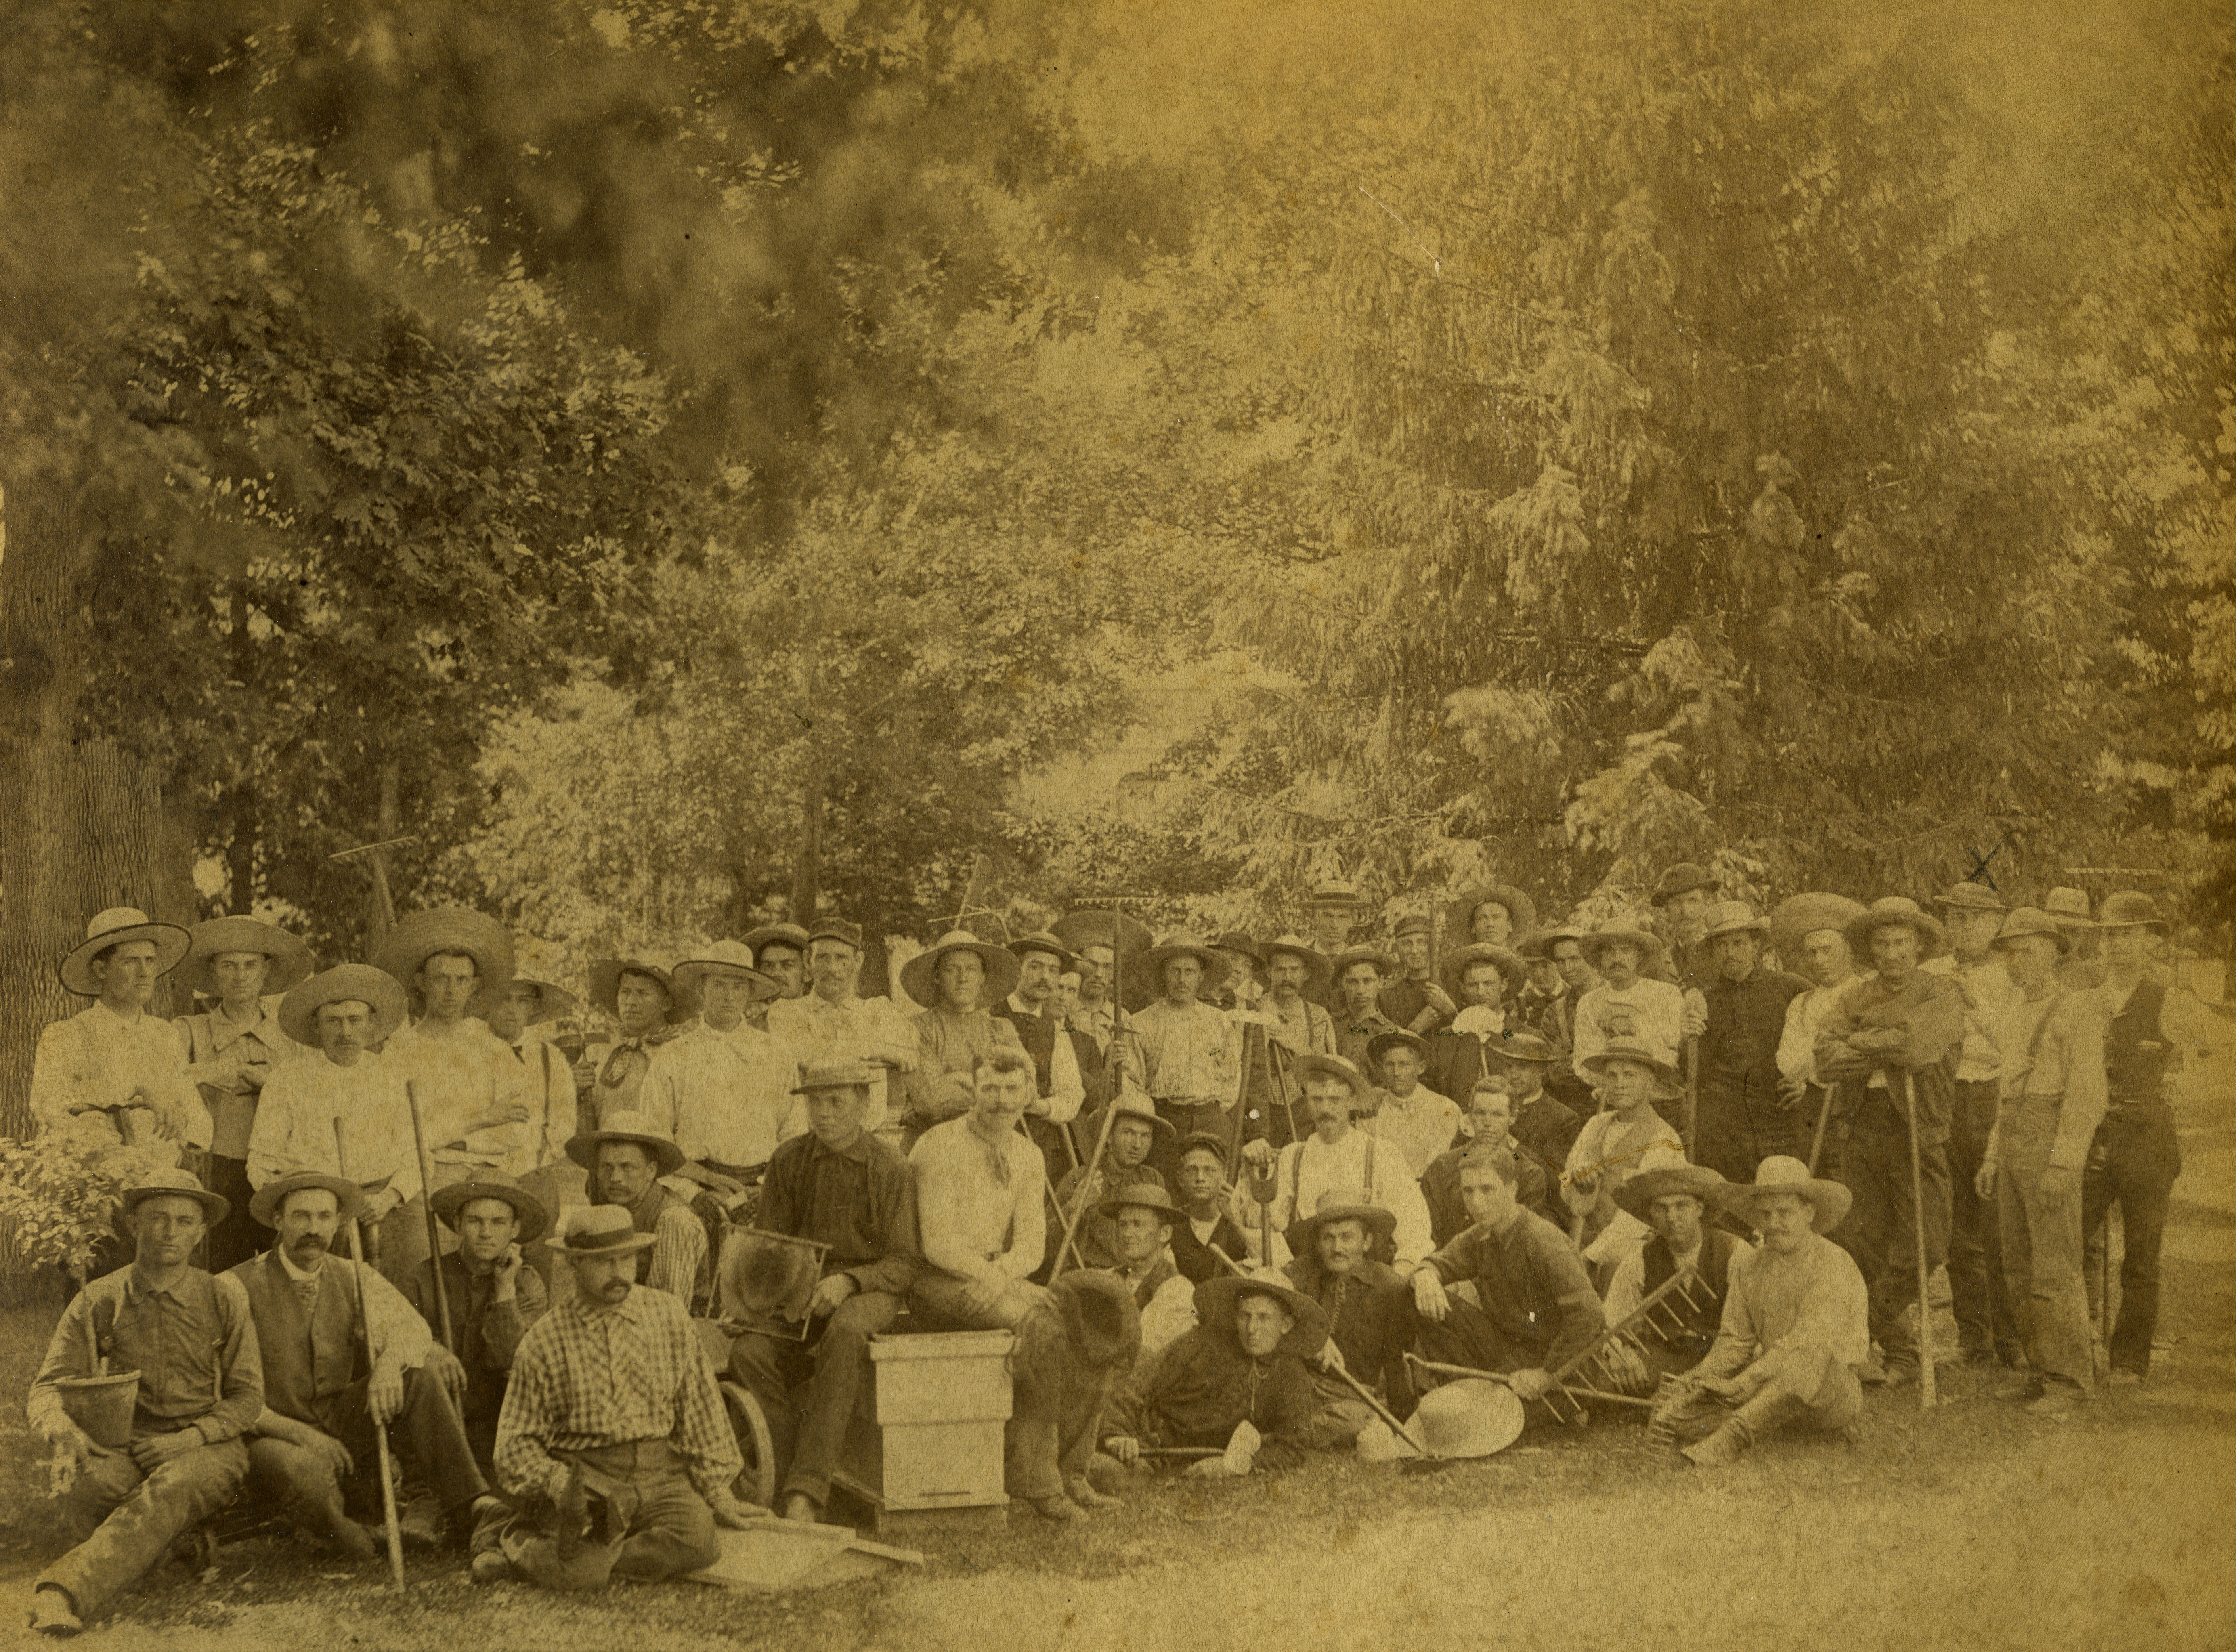 Horticulture students, 1884